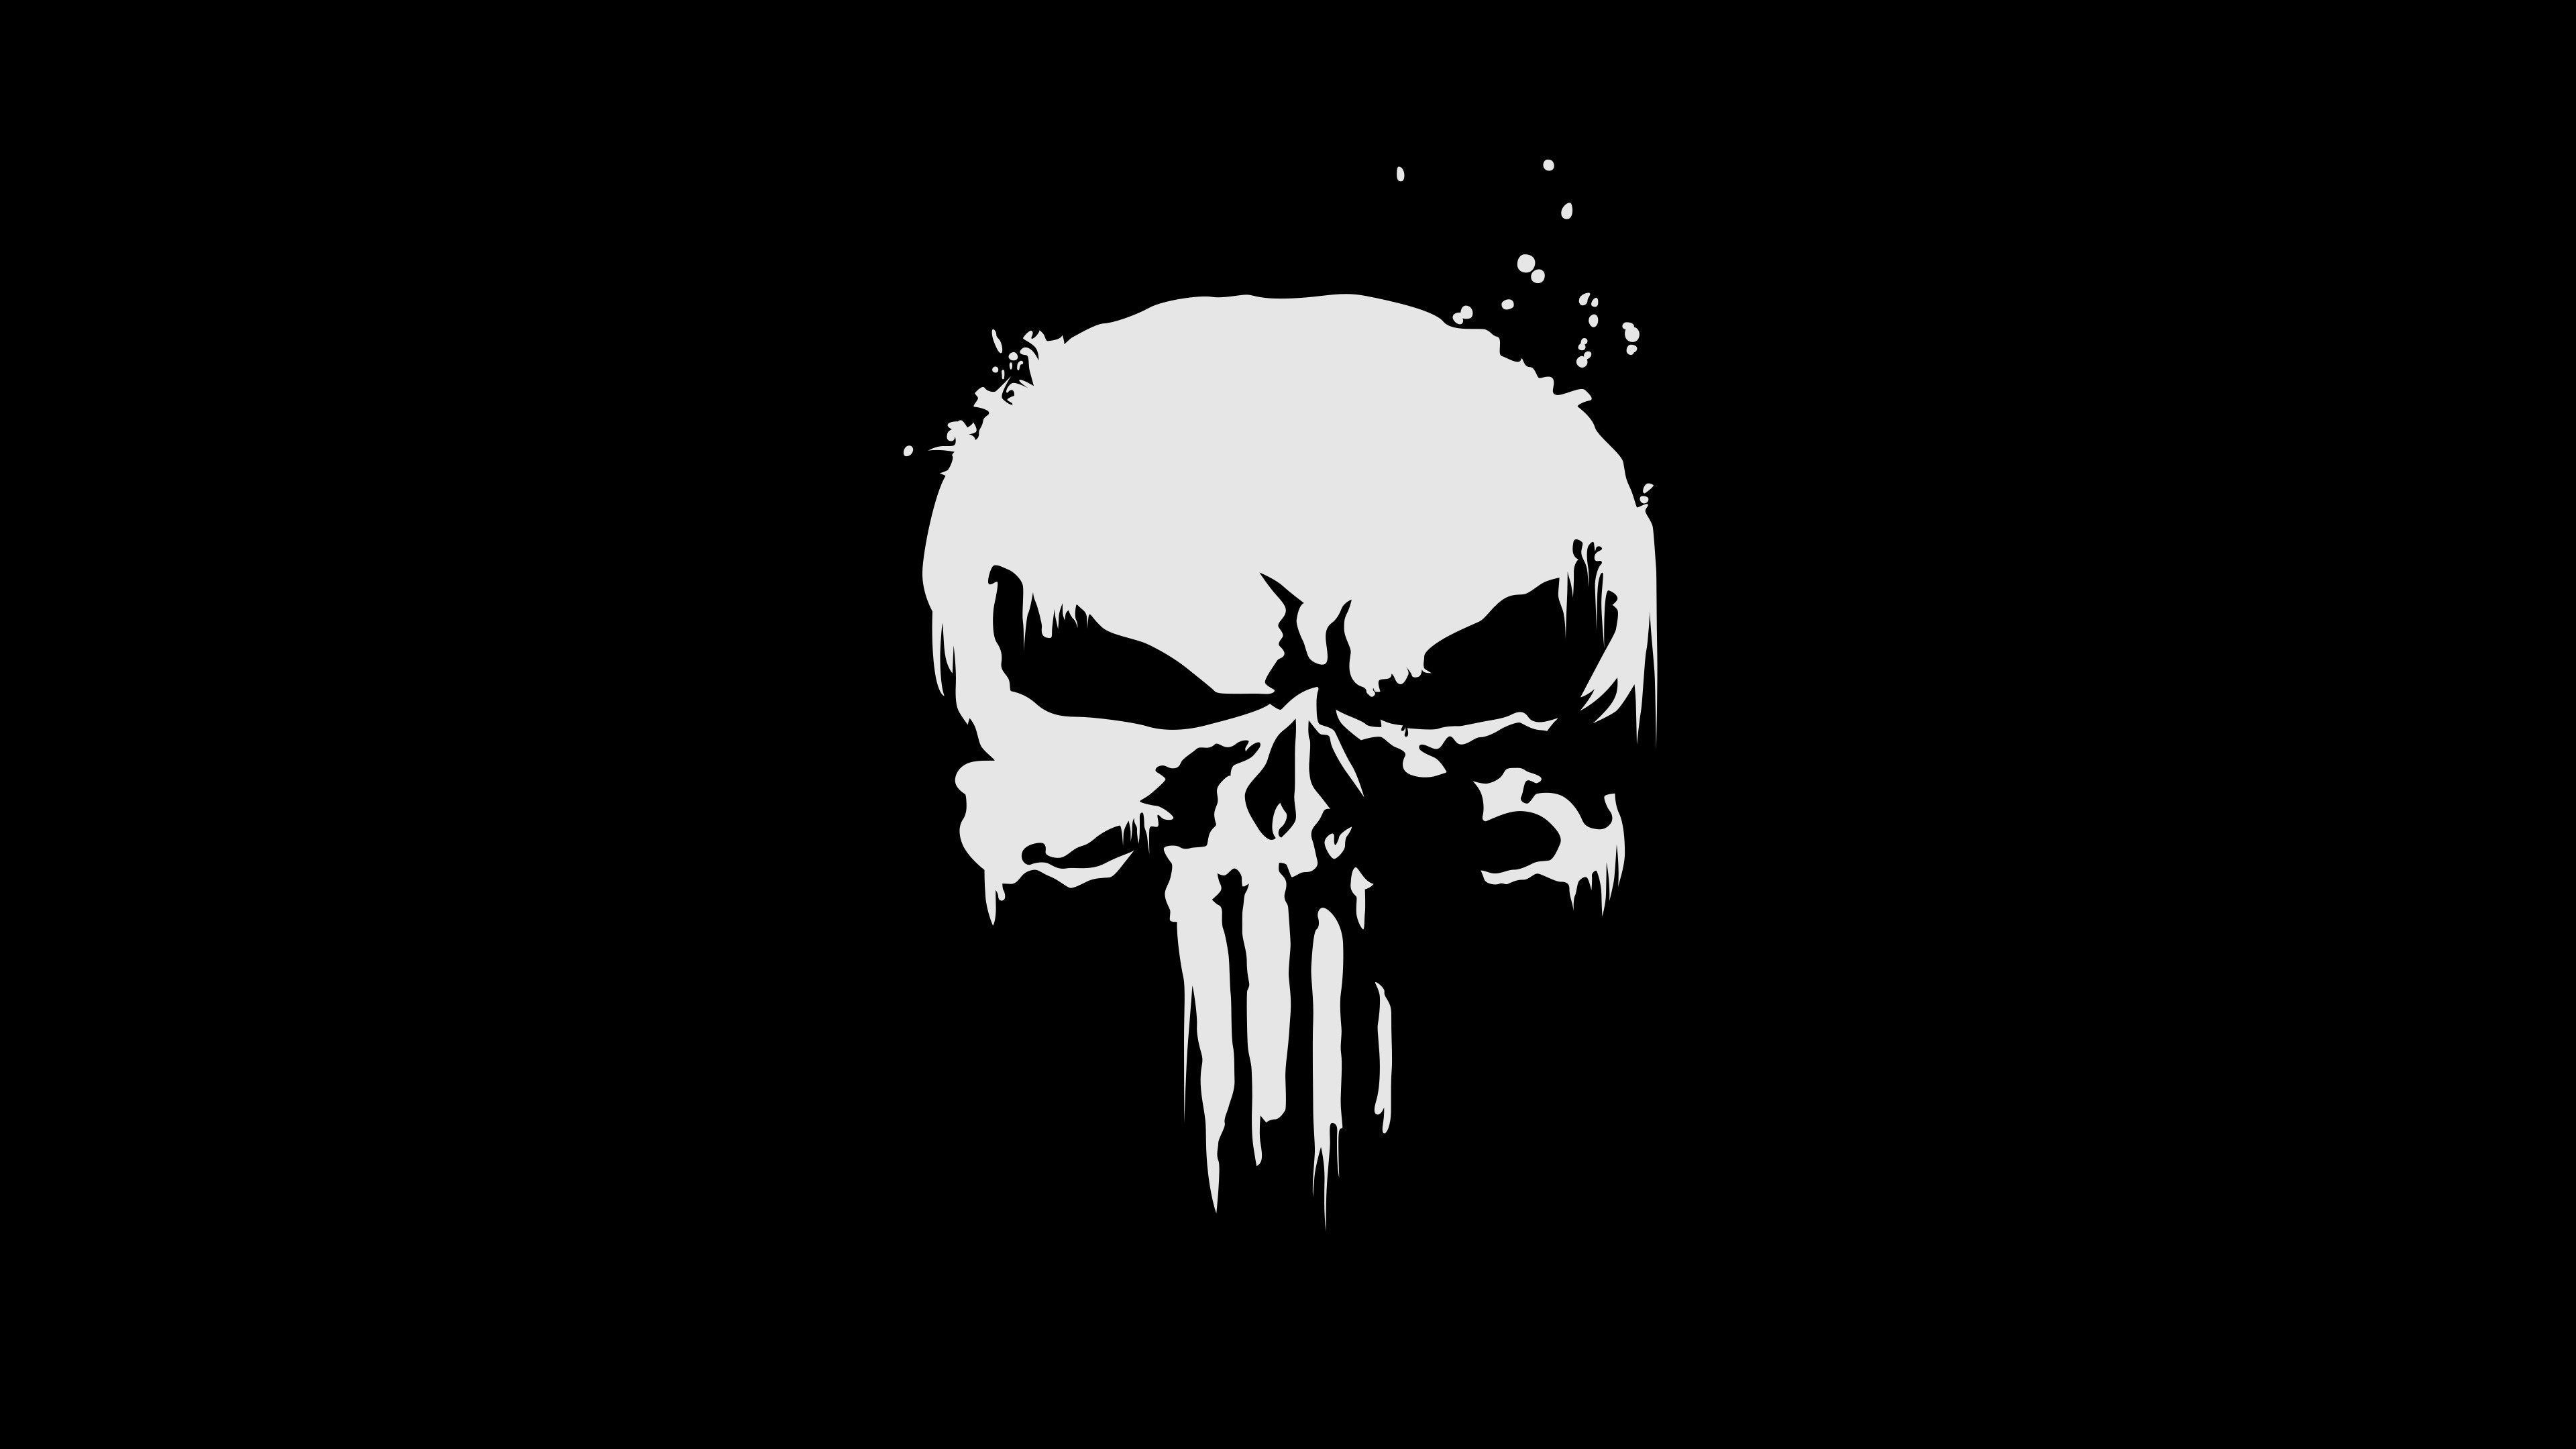 3840x2160 the punisher logo 4k 3d | Zoom Comics - Daily Comic Book ...